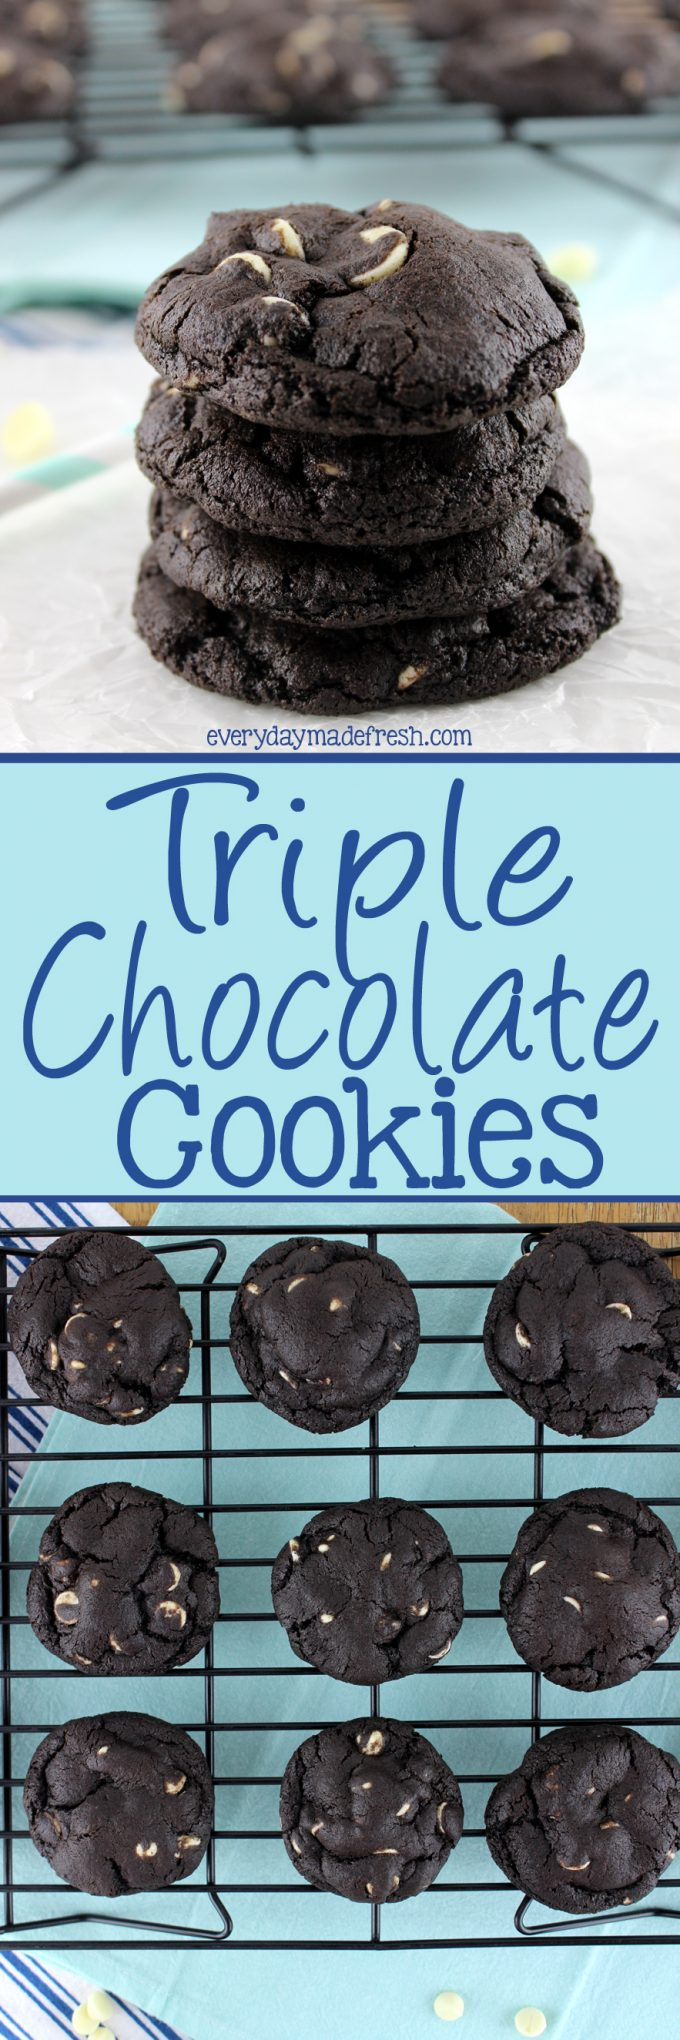 These Triple Chocolate Cookies aren't playing around. They are loaded with serious chocolate flavors, from dark chocolate, milk chocolate, and white chocolate! | EverydayMadeFresh.com